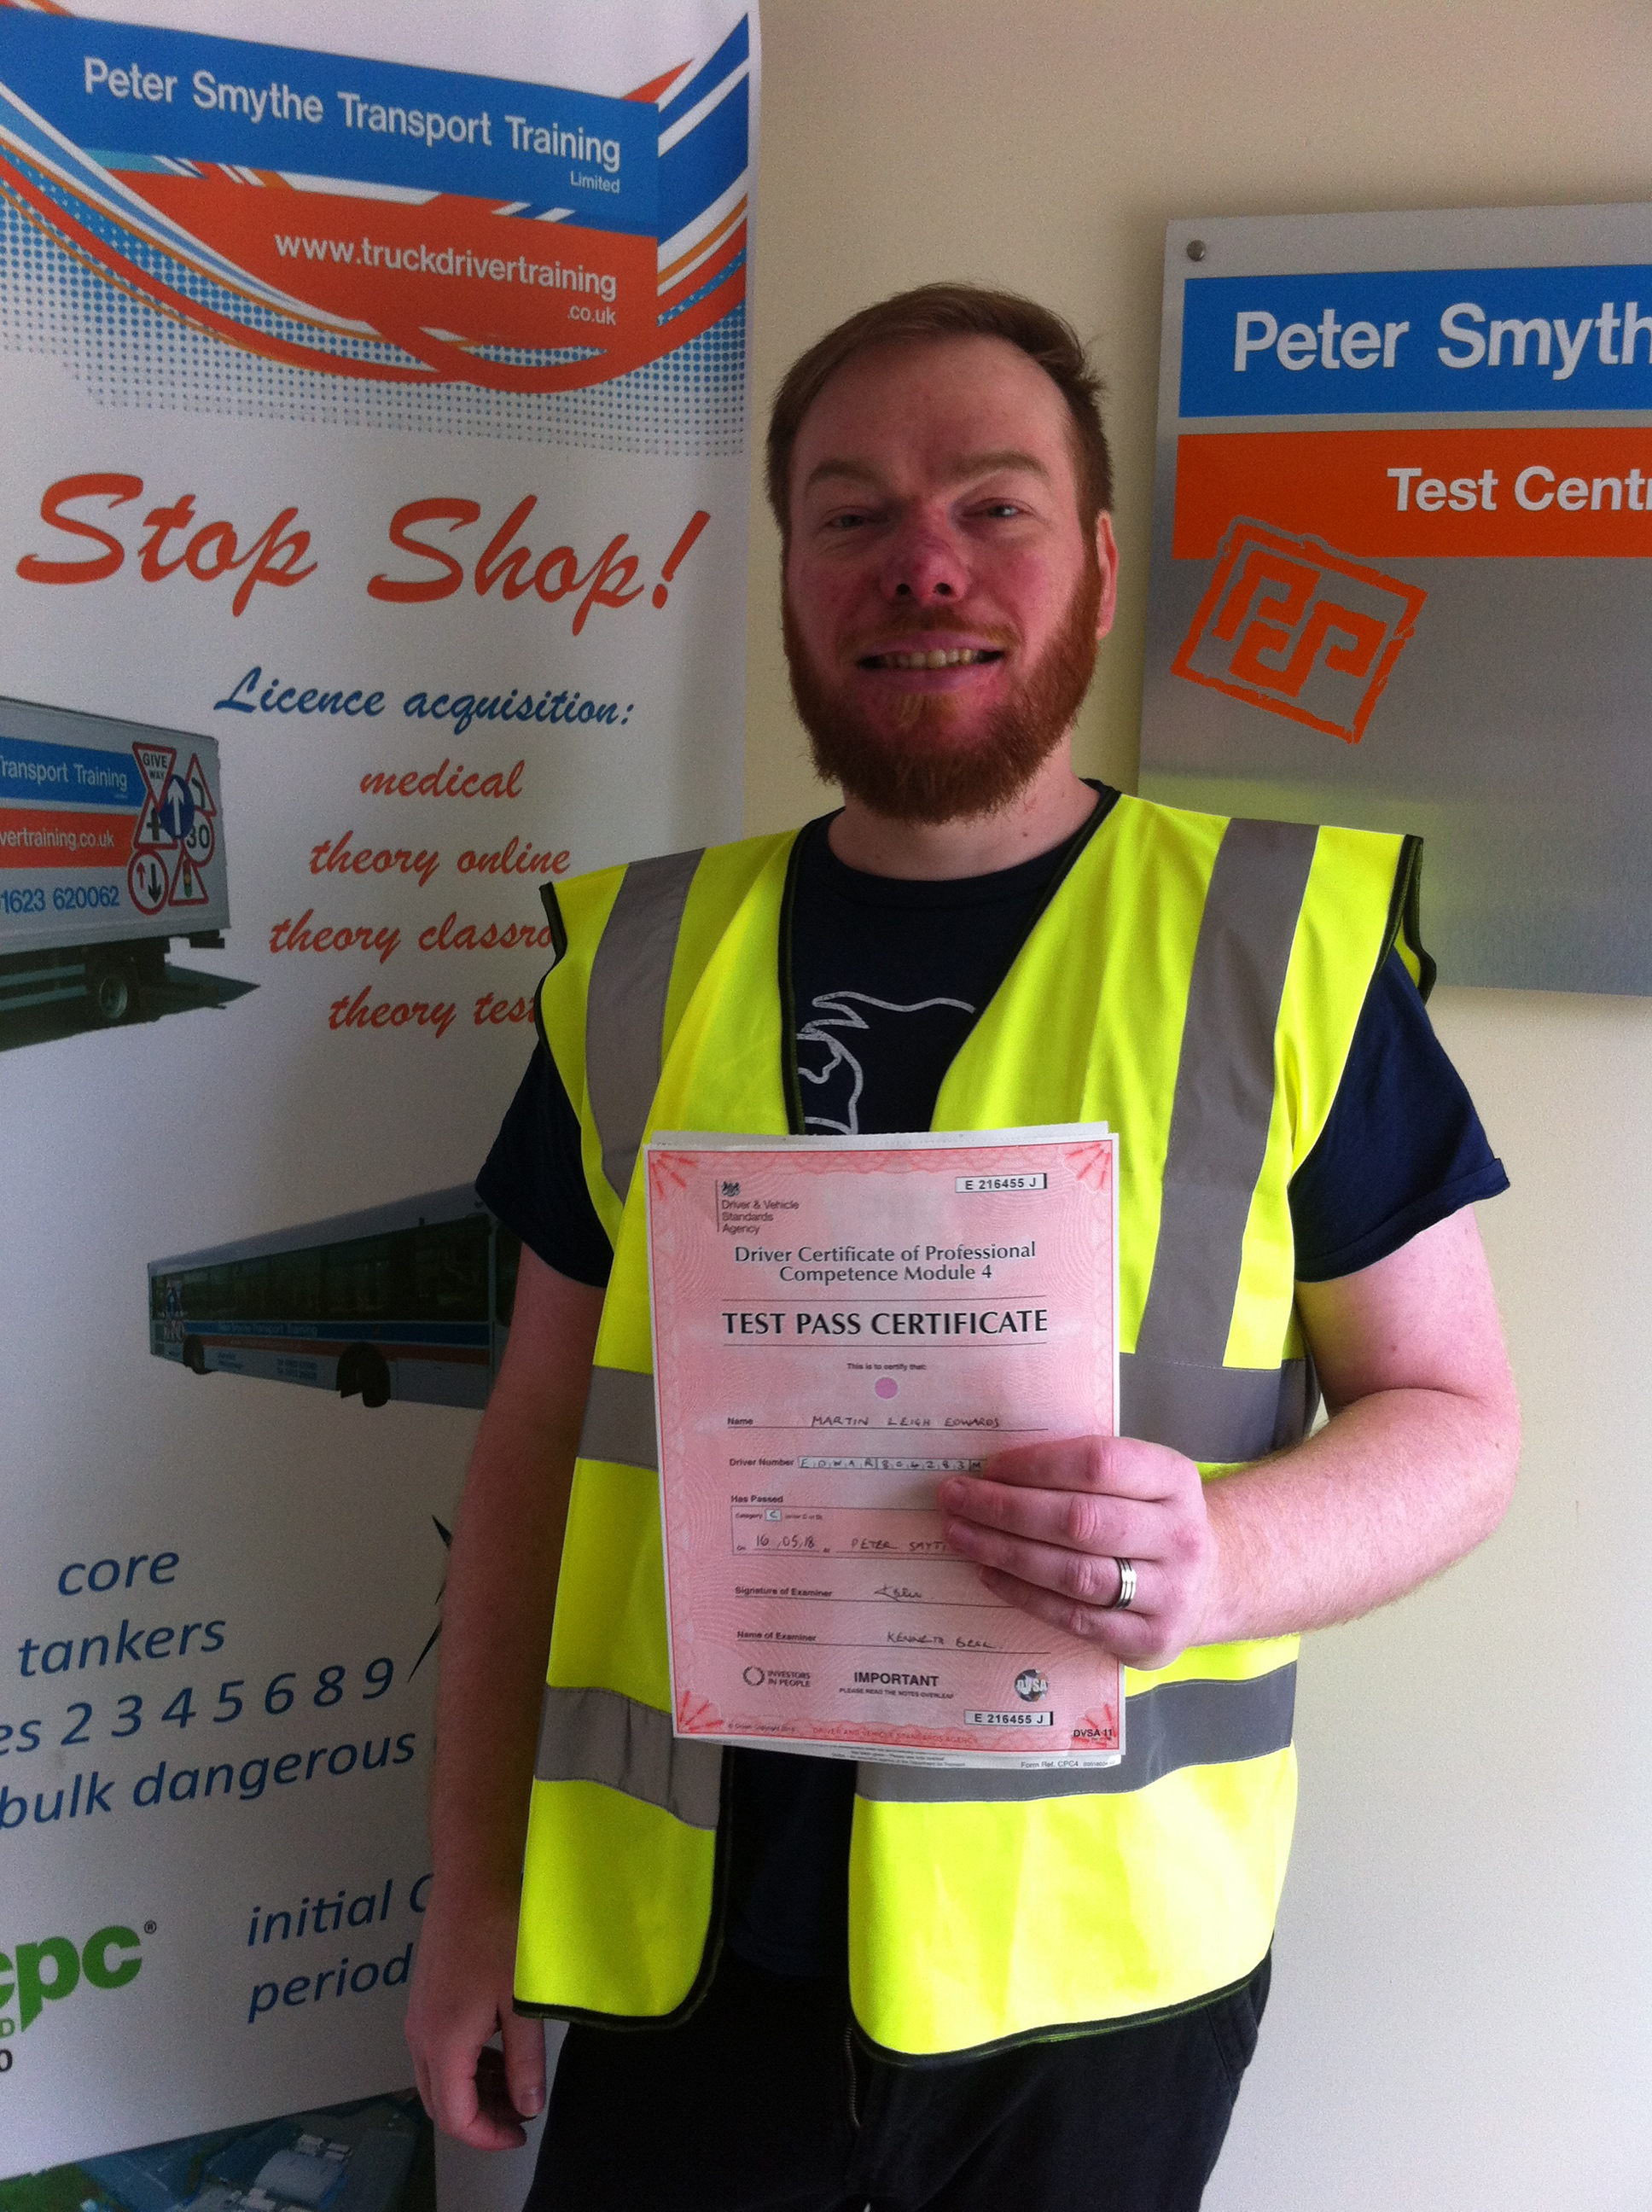 Martin Edwards from Barnsley PASSED CPC MOD 4#ipassedwithpstt